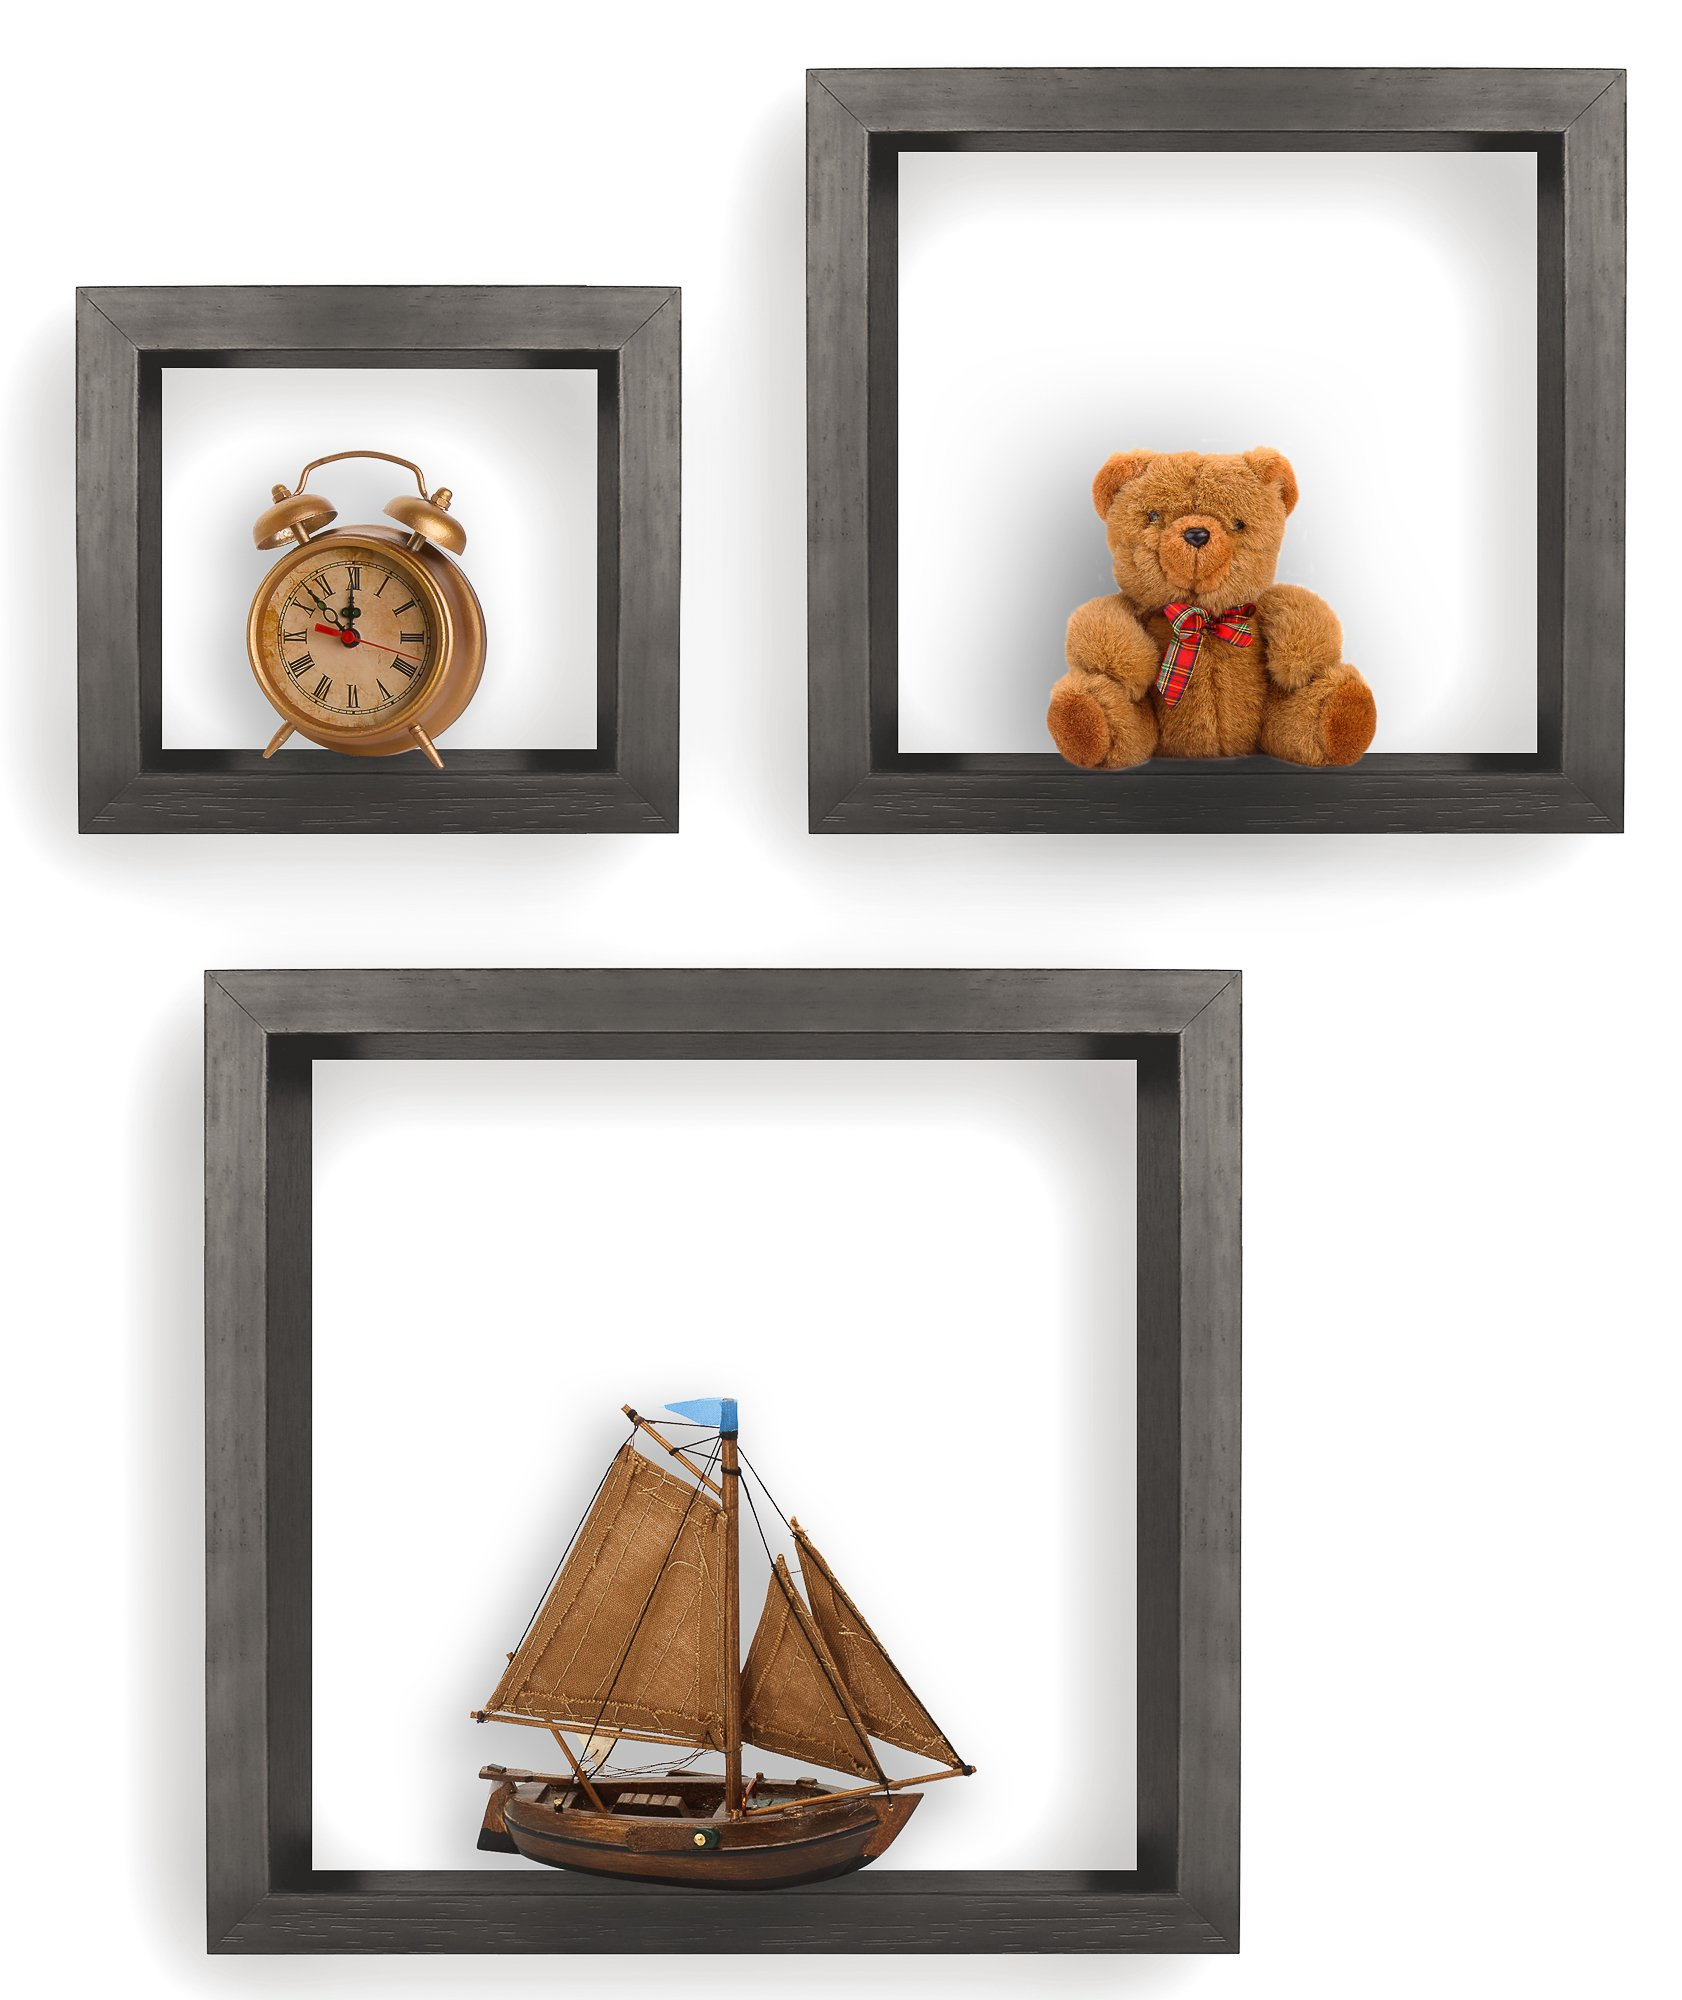 Greenco Set of 3 Floating Cube Shelves, Espresso Finish - Set of 3 size shelves Made of durable MDF laminate Beautiful espresso finish that suits almost any decor Easy to mount with all necessary hardware Included - wall-shelves, living-room-furniture, living-room - 81kjlaH bVL -